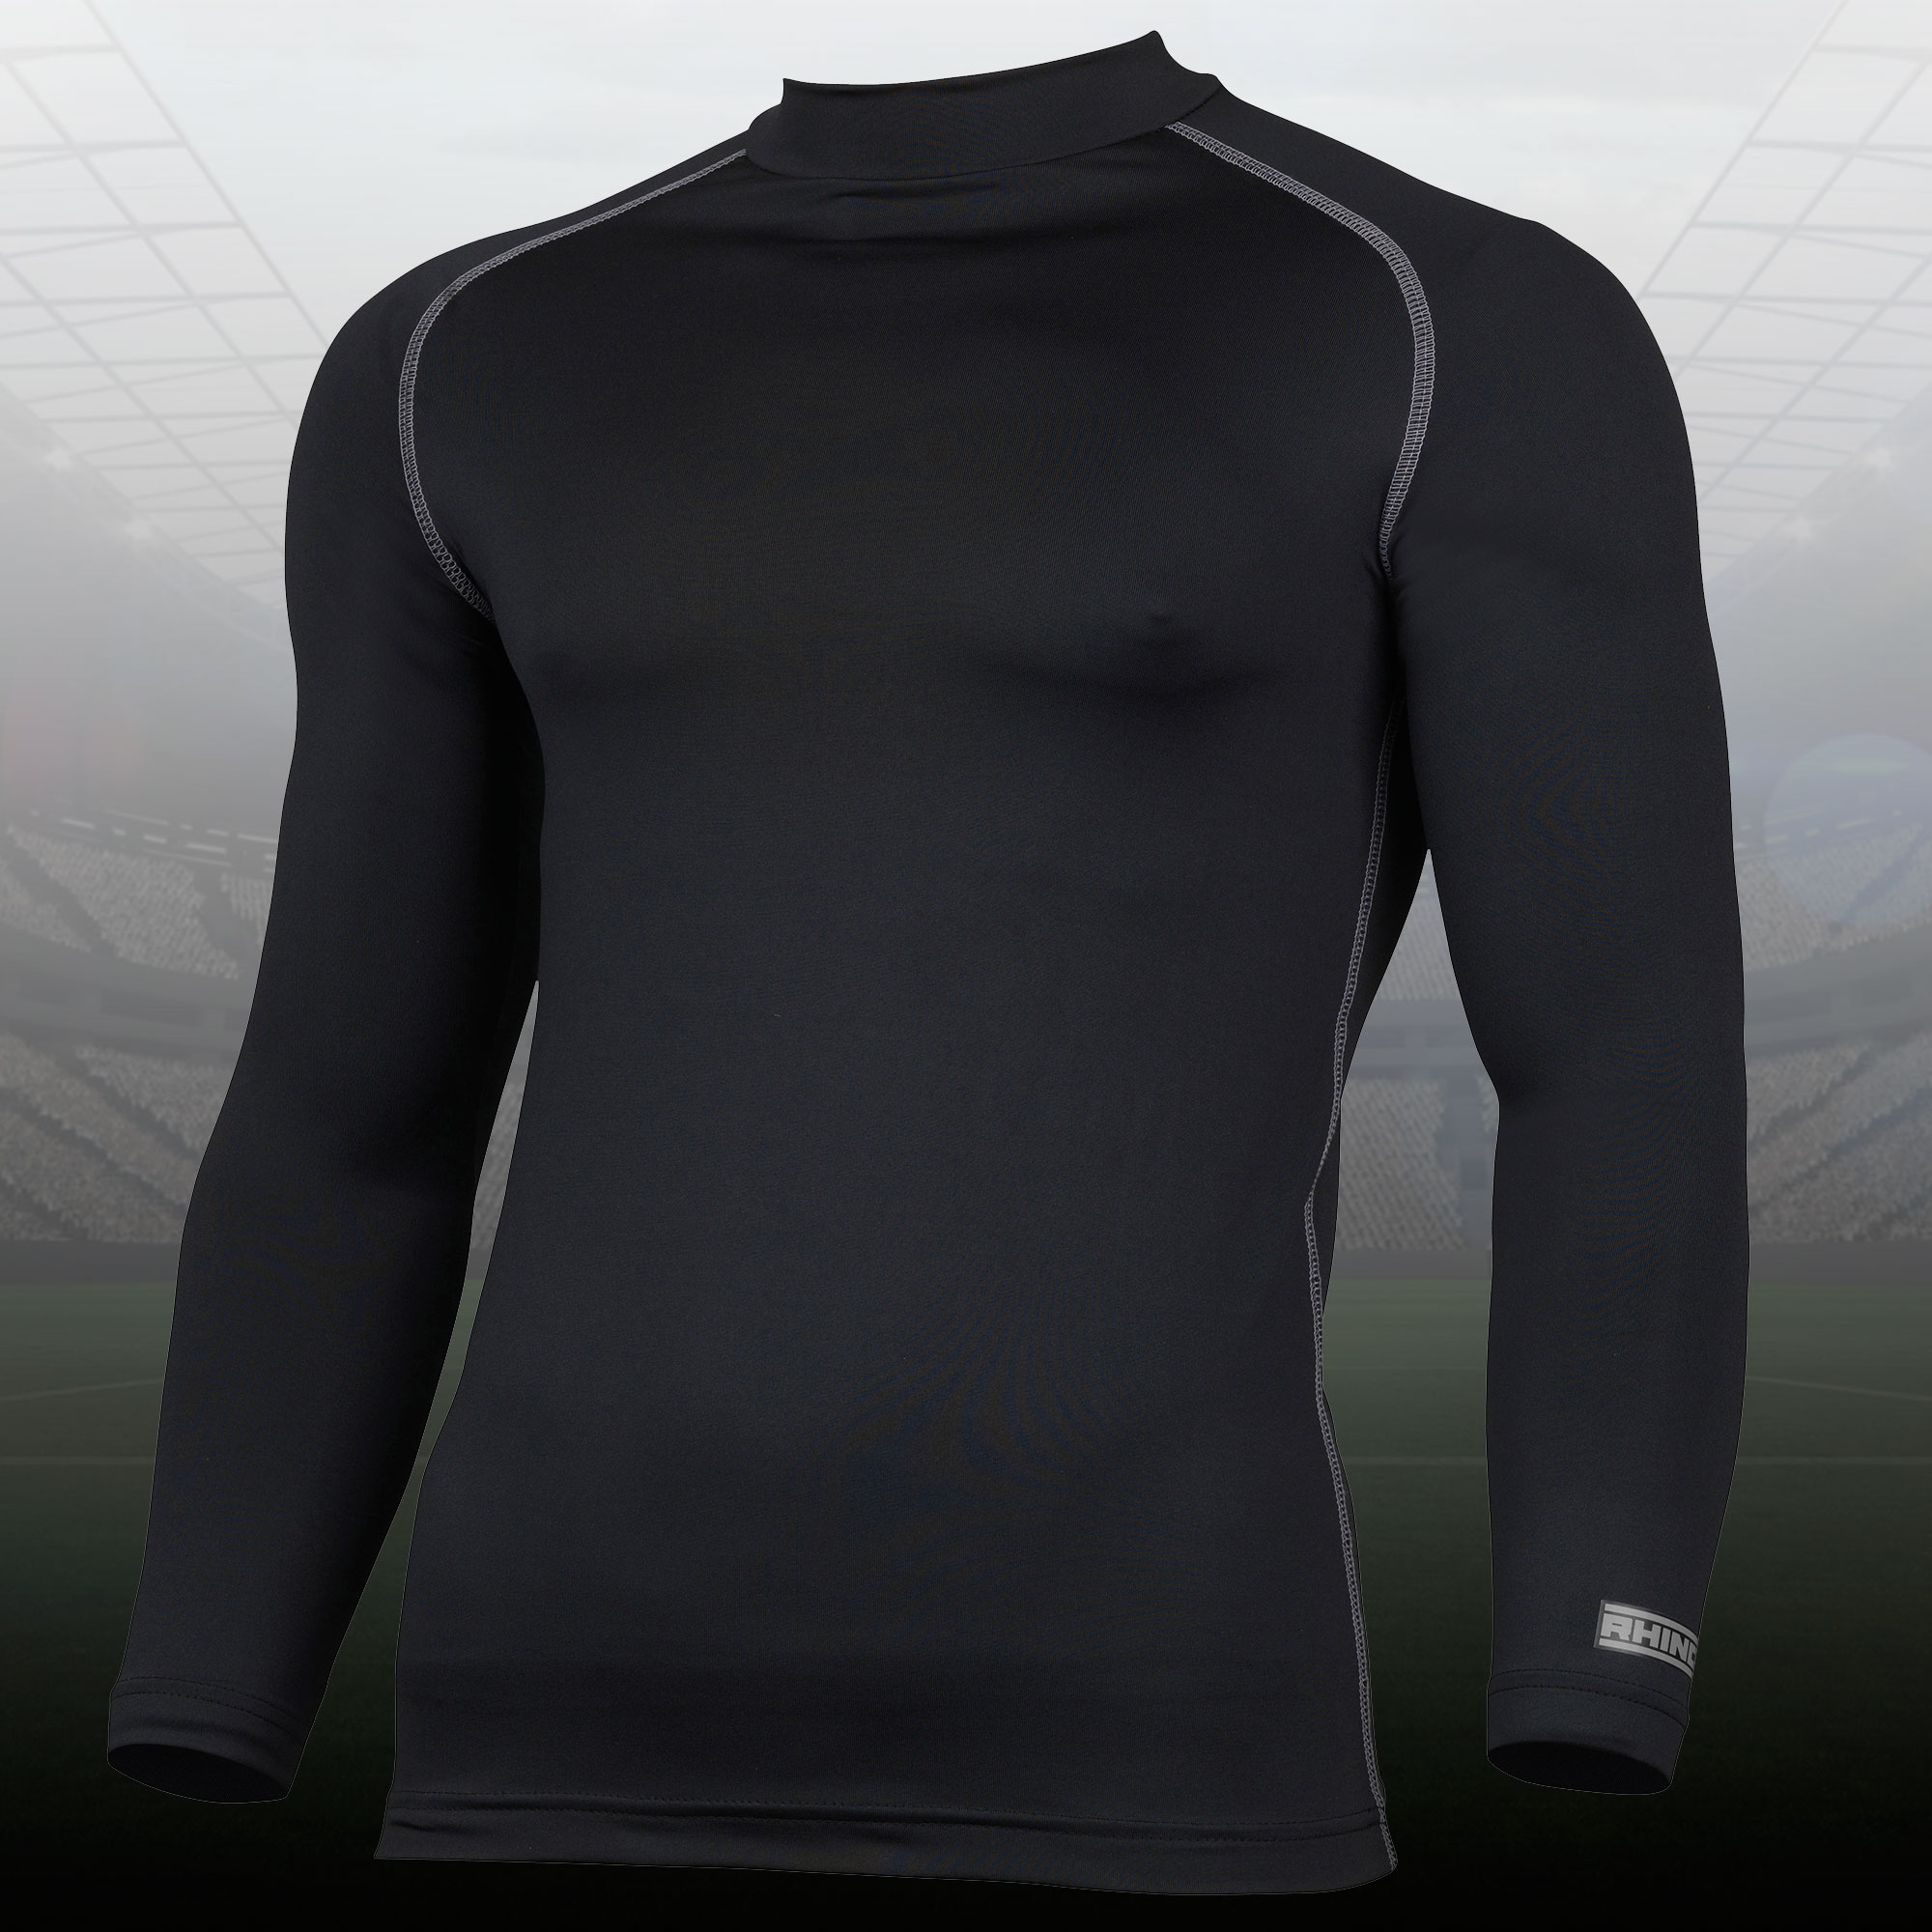 RHINO BASELAYER